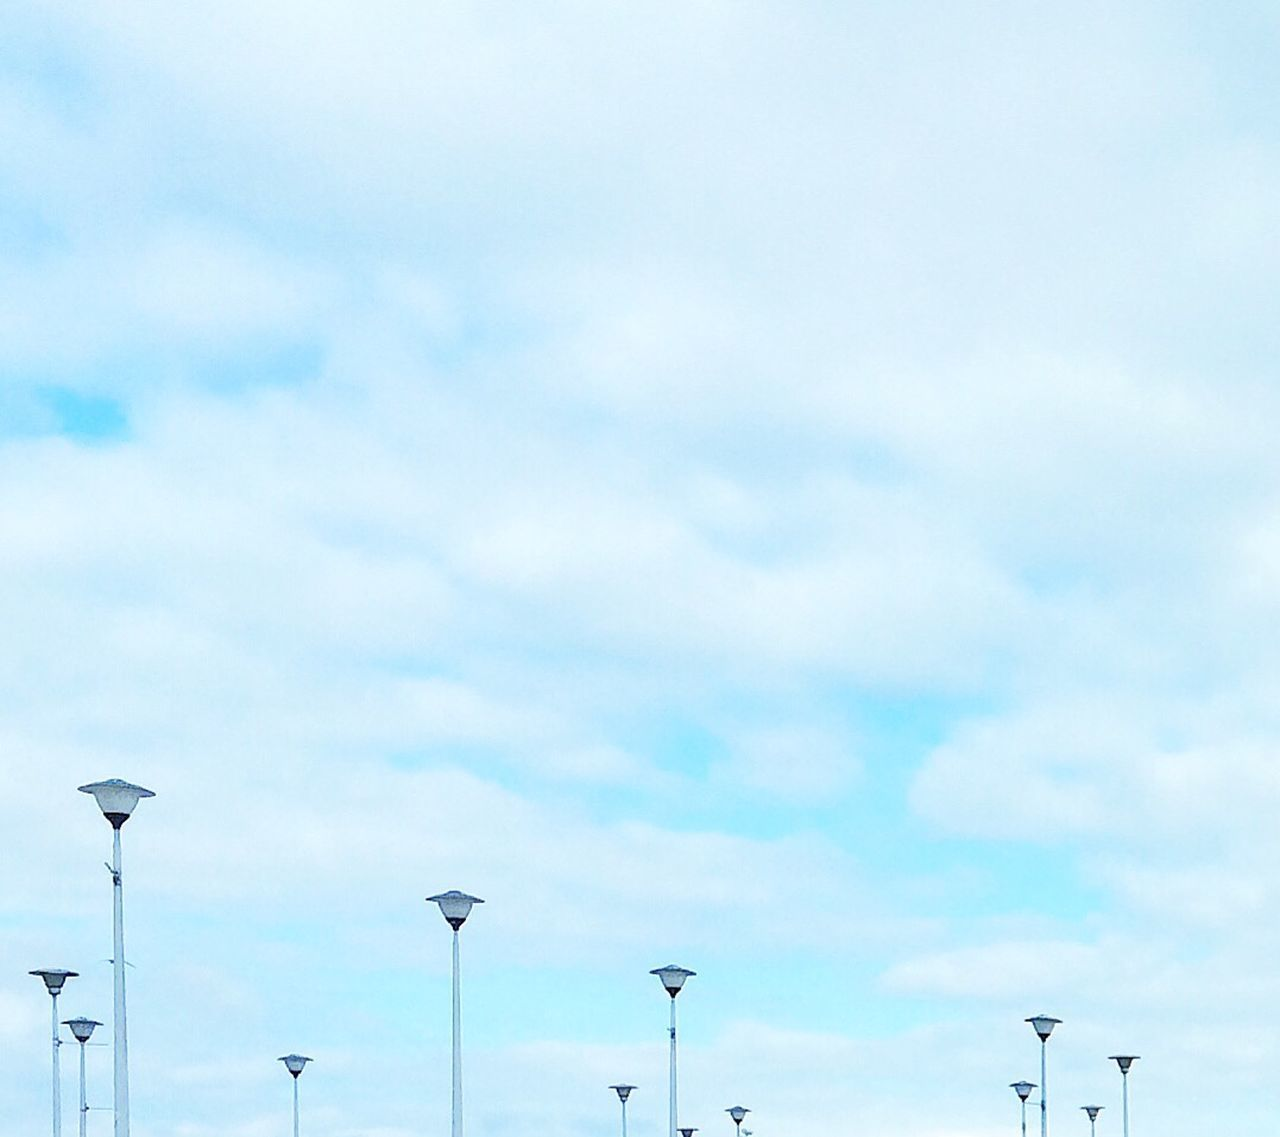 low angle view, cloud - sky, sky, day, street light, no people, outdoors, technology, nature